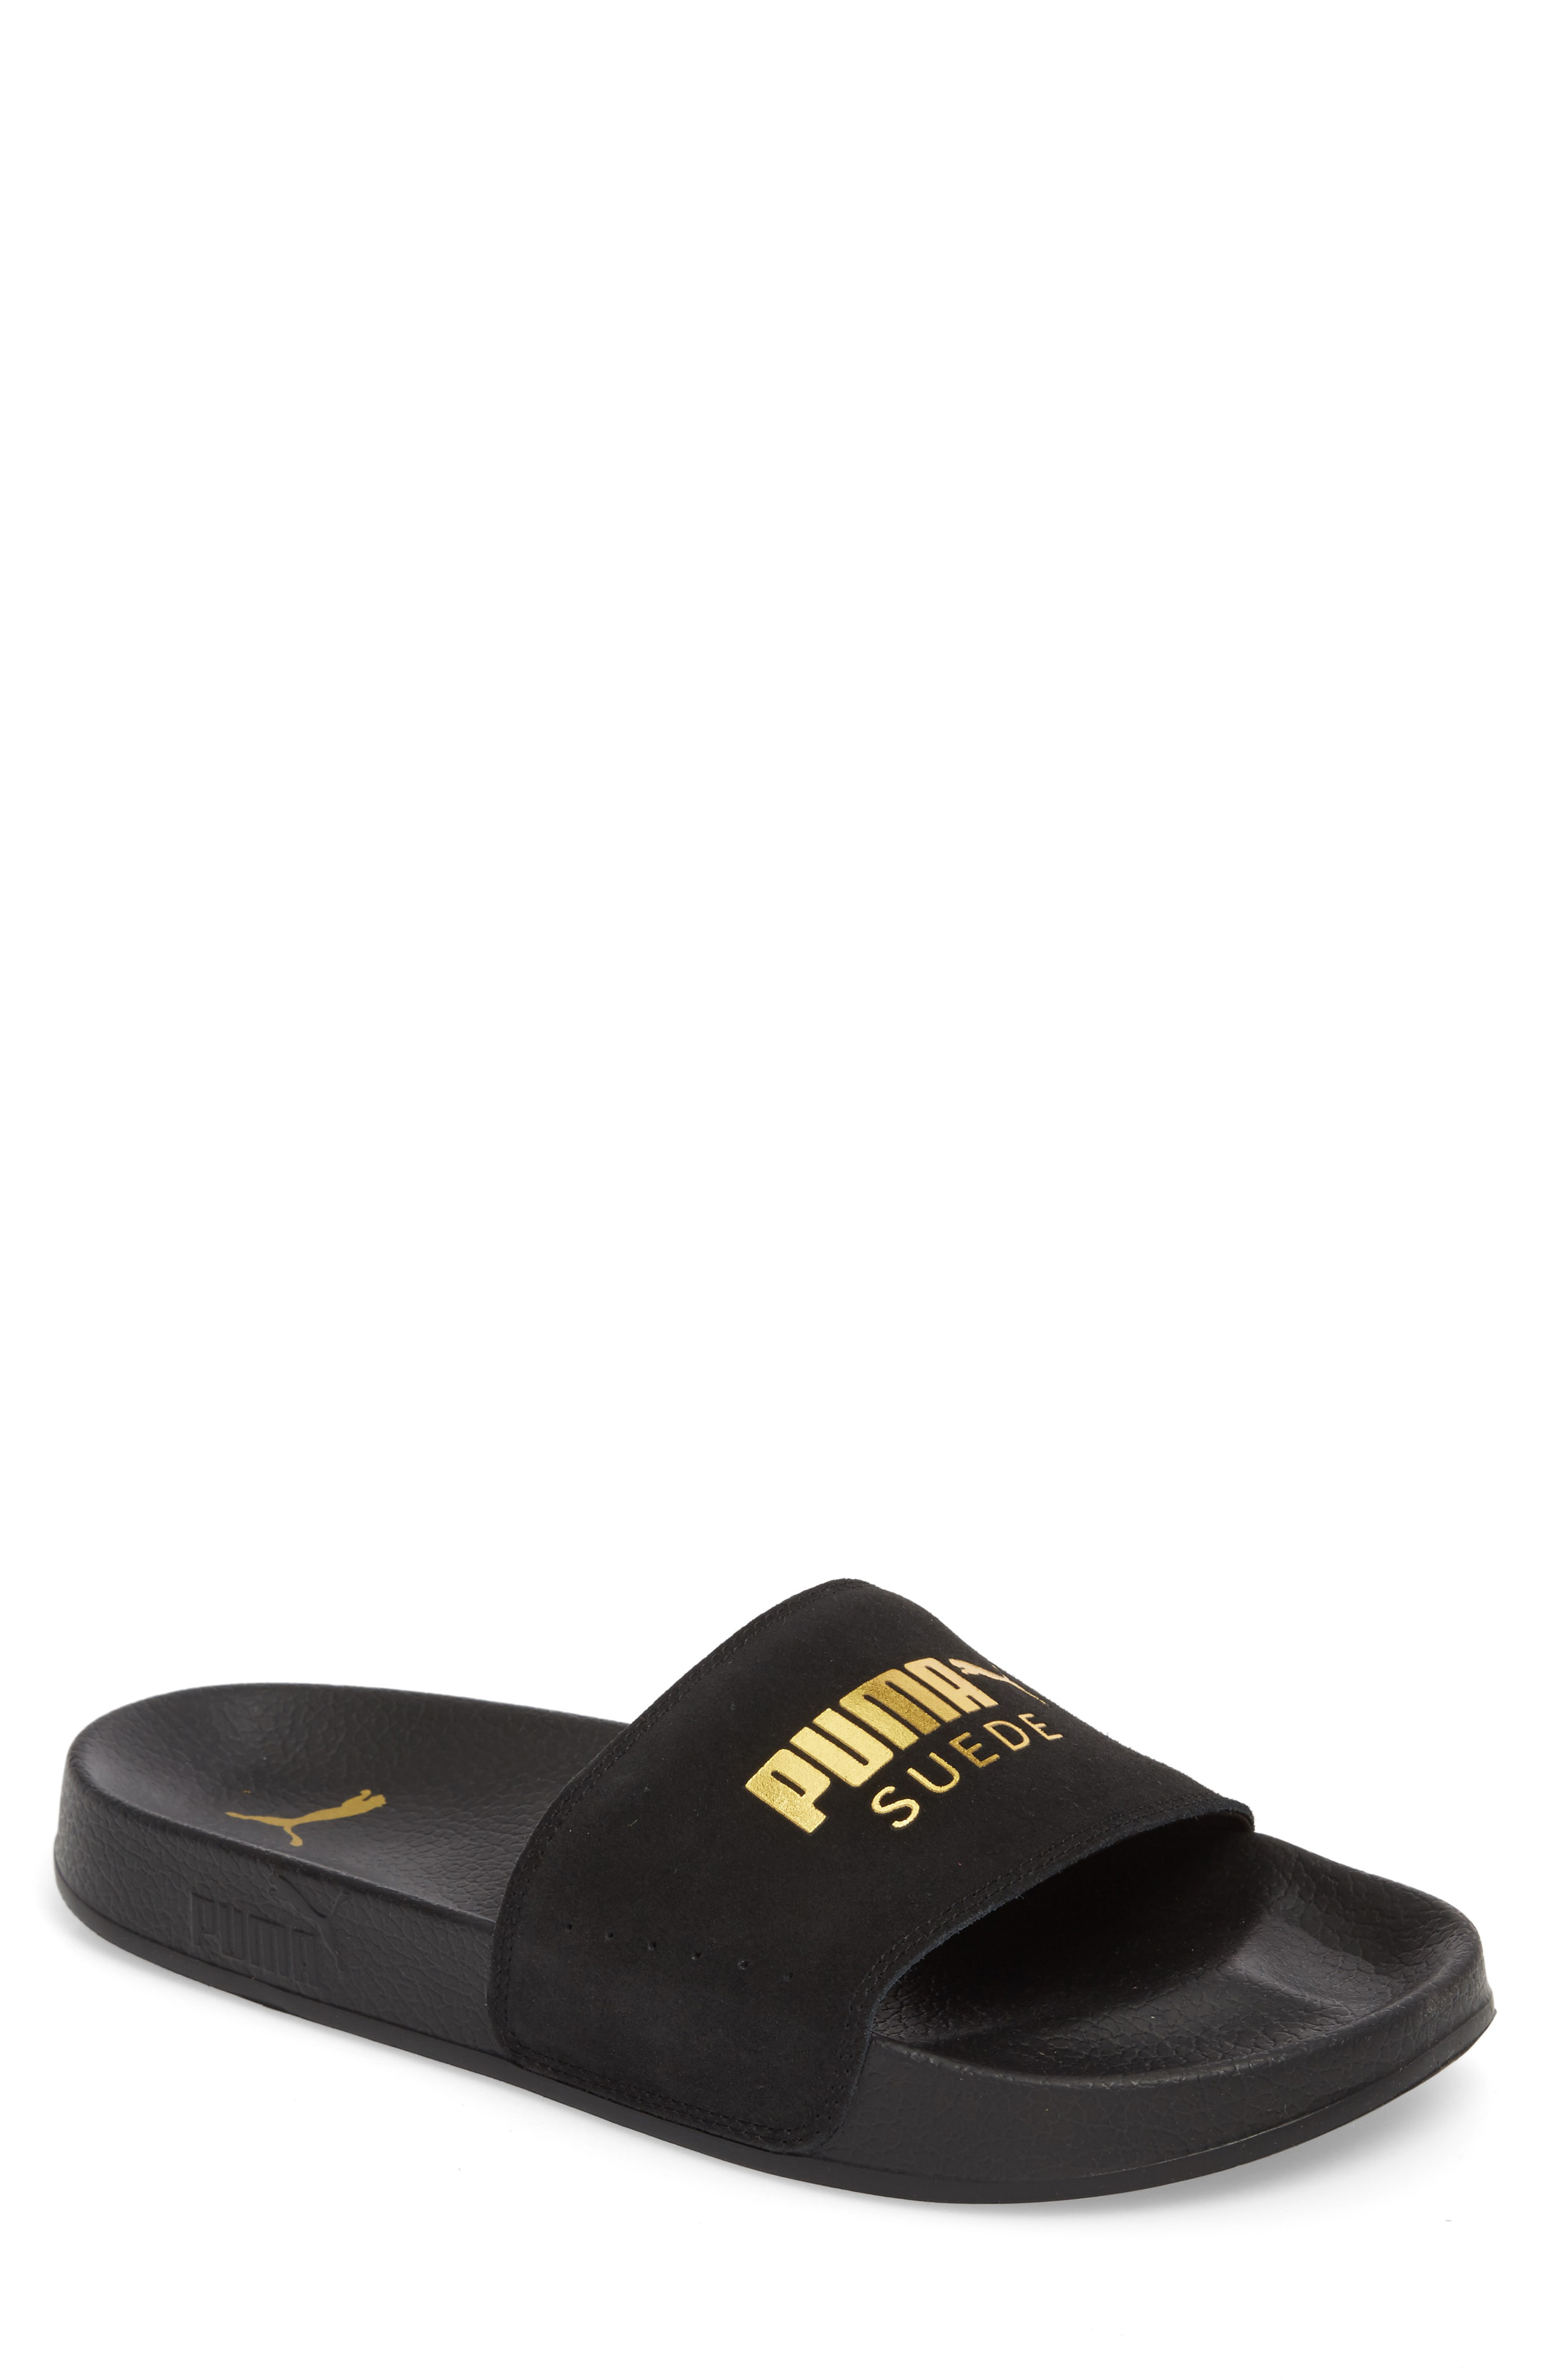 40d40e41f8be A logo-stamped bridge of soft suede ups the casual versatility of a sporty  slide molded for comfort with a contoured footbed. Style Name  Puma Leadcat  Suede ...